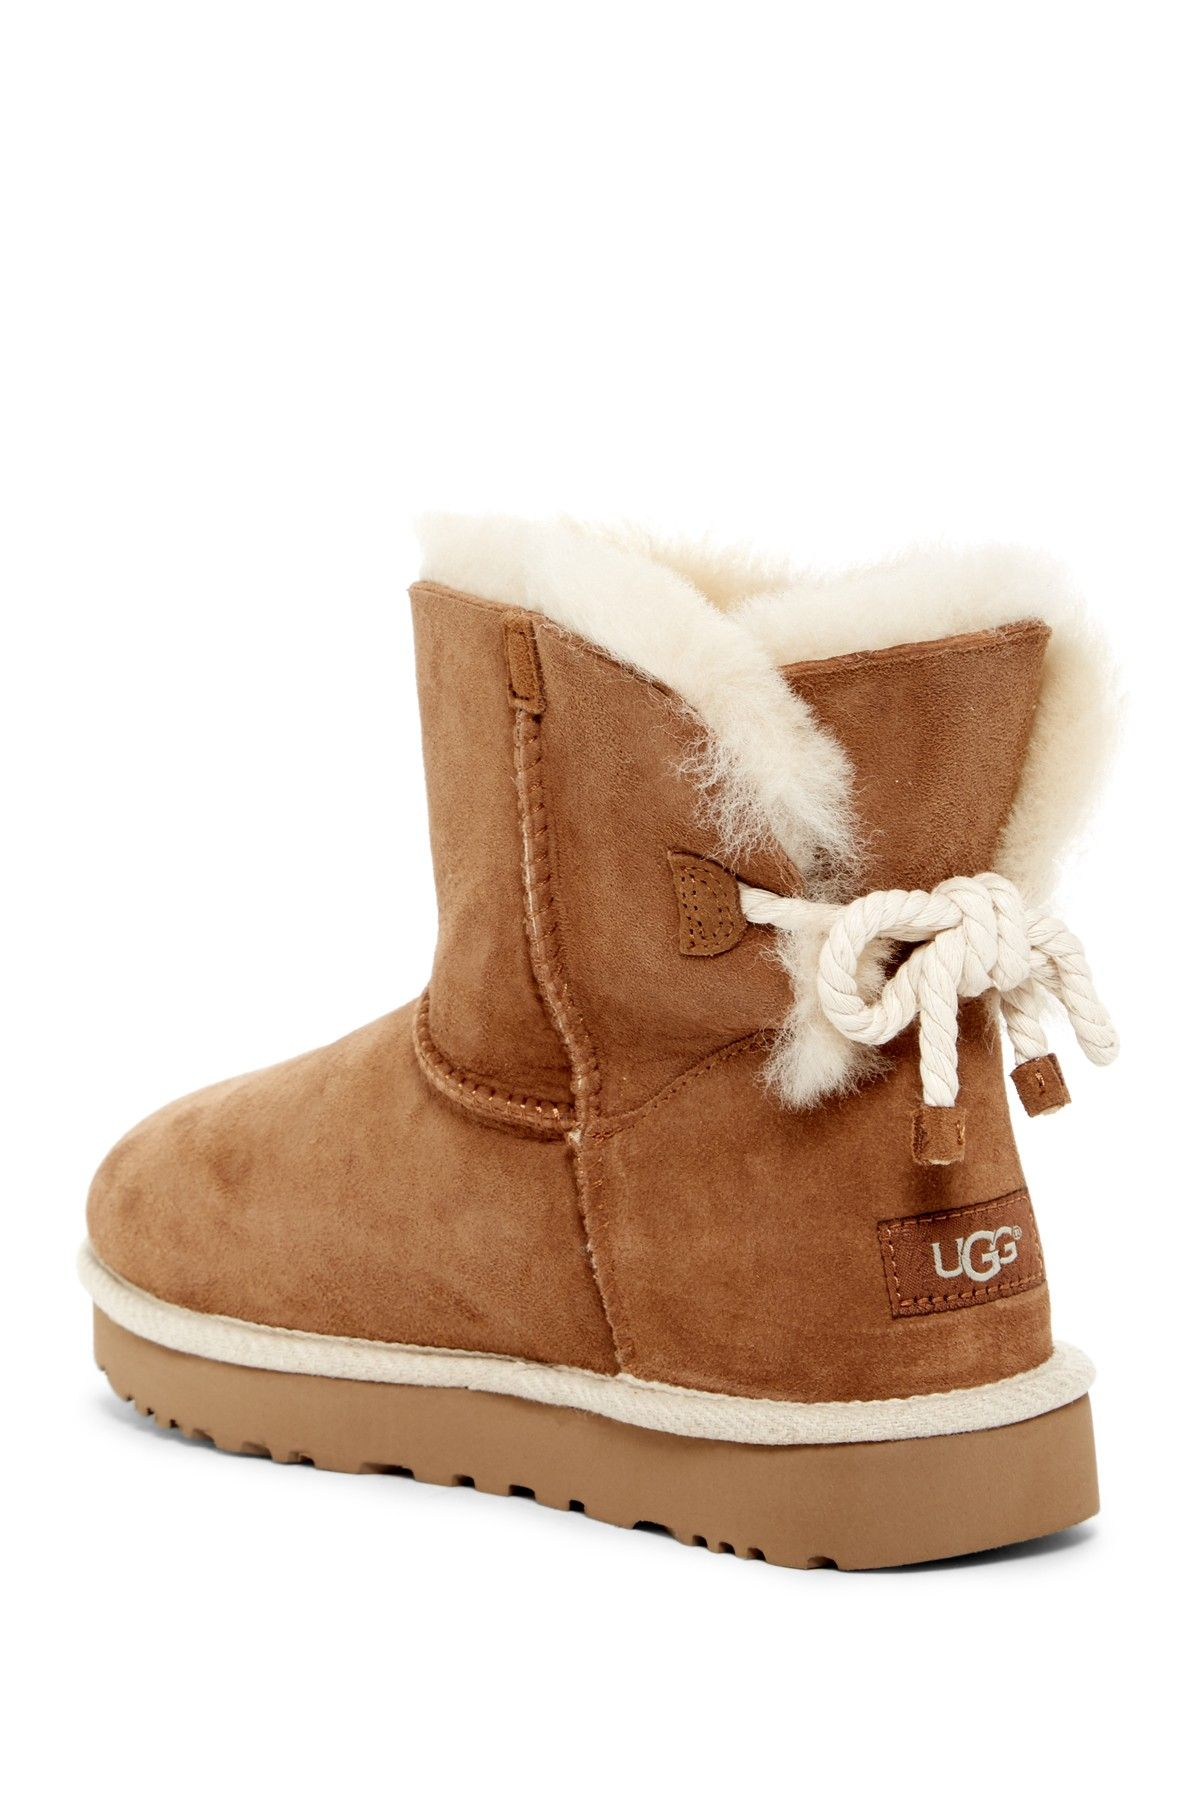 3e4628a7a10 Selene UGGpure(TM) Lined Boot in 2019 | Fashion & Accessories ...